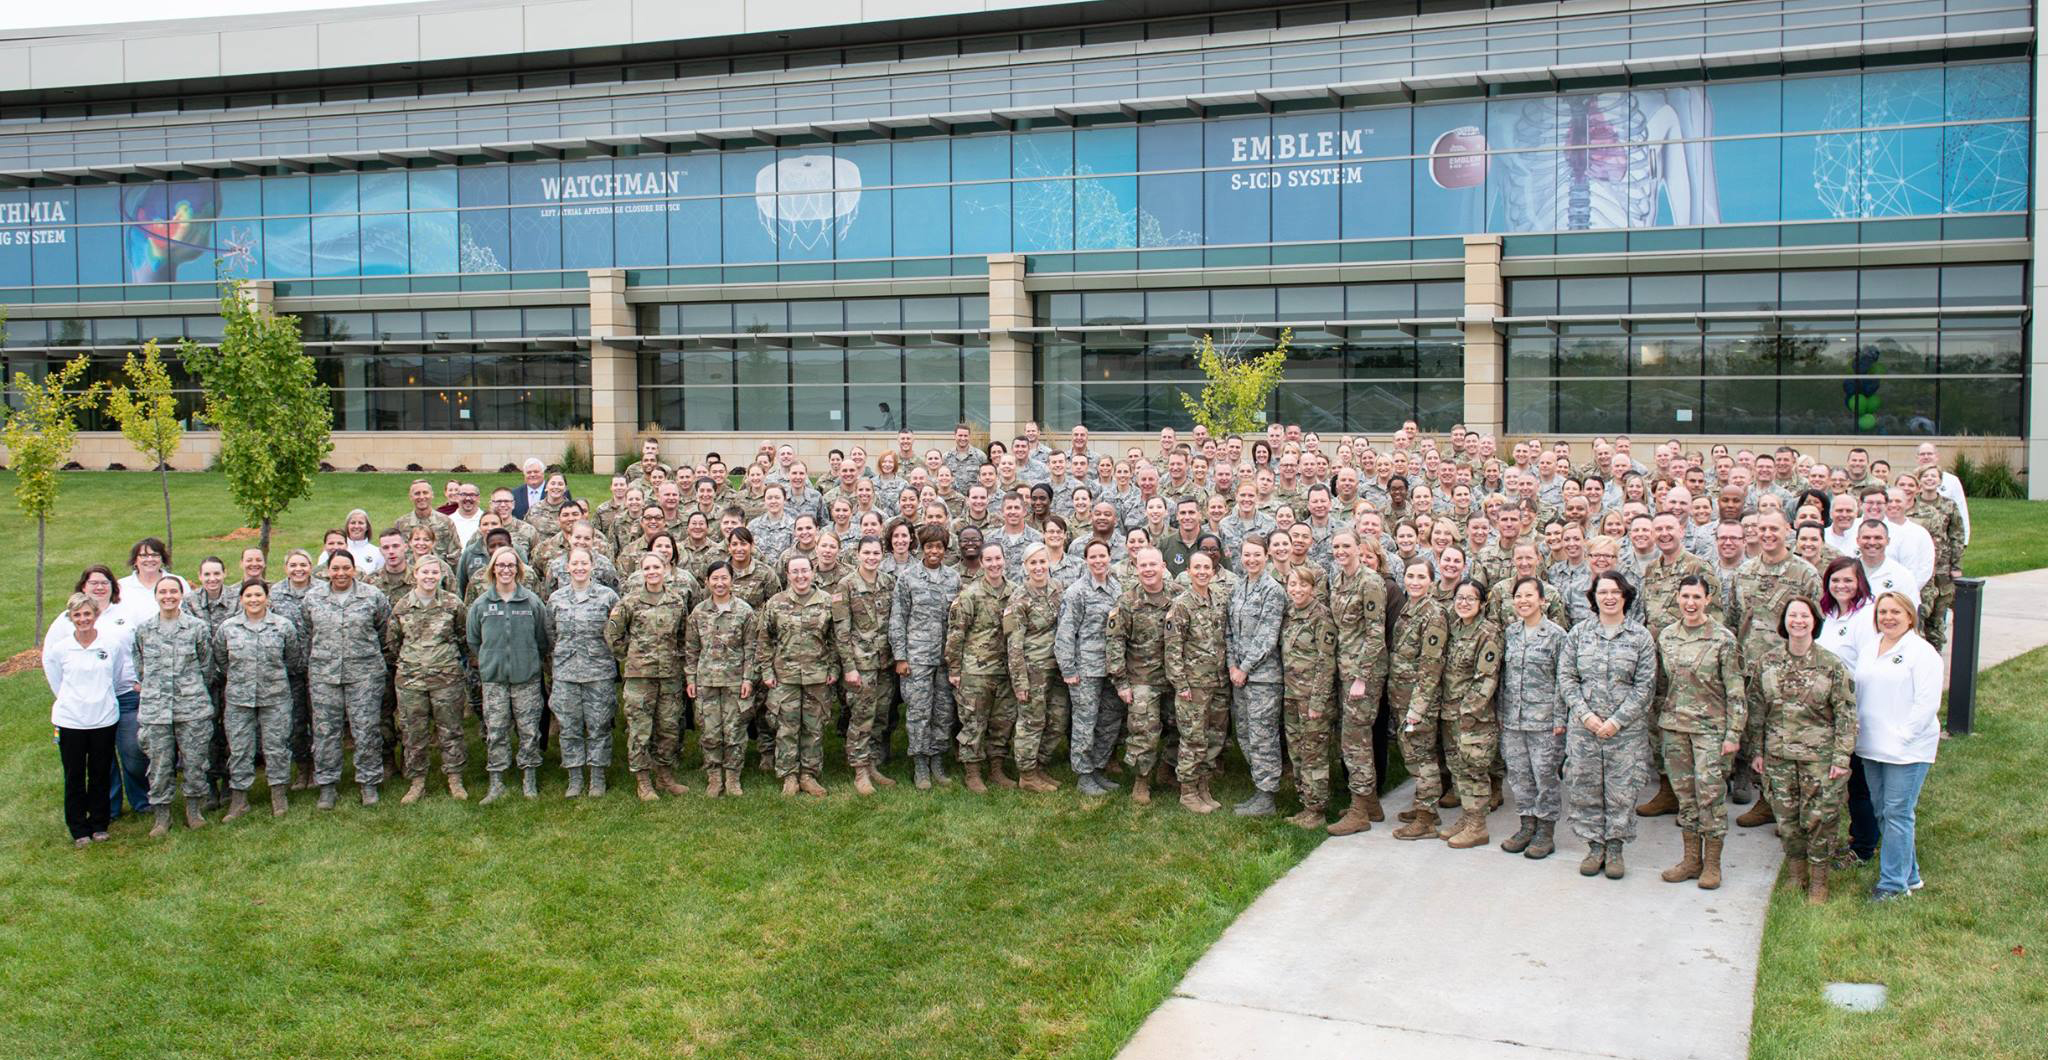 Soldiers and Airmen from the Minnesota National Guard pose for a photo during the 2018 Women's Leadership Forum at Boston Scientific, Sept. 29, 2018.